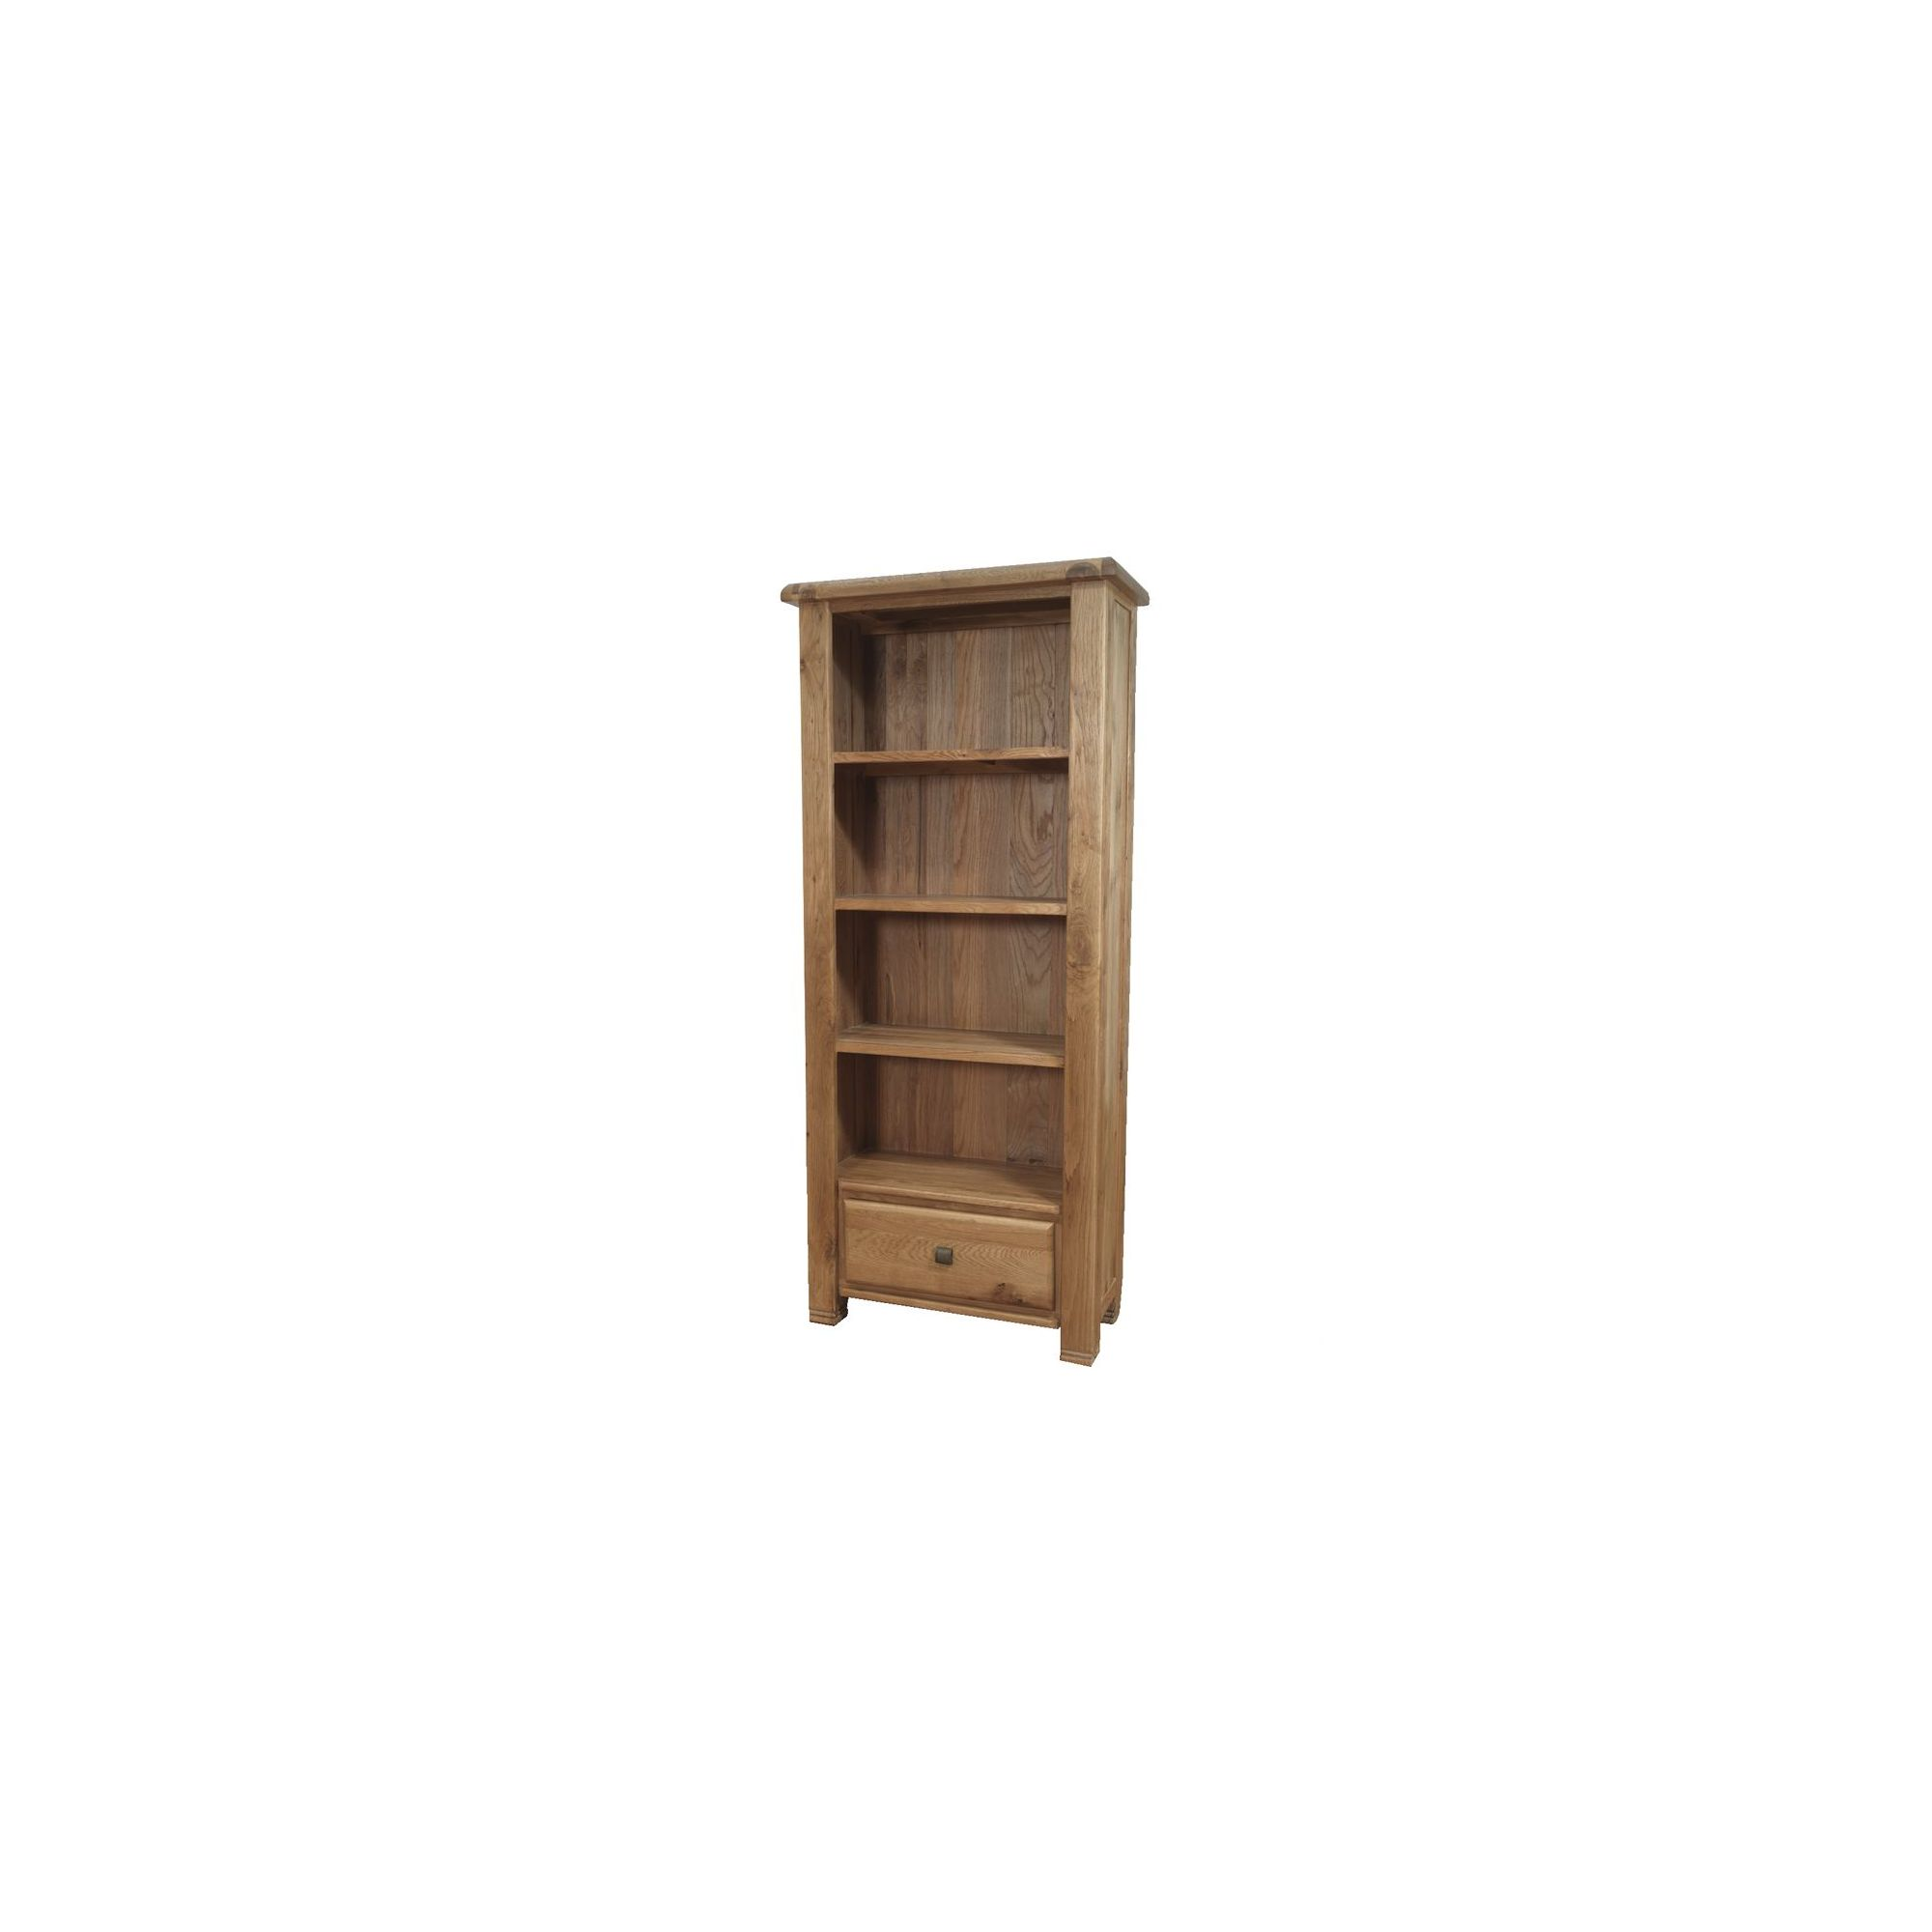 Furniture Link Danube Bookcase in Weathered Oak at Tesco Direct